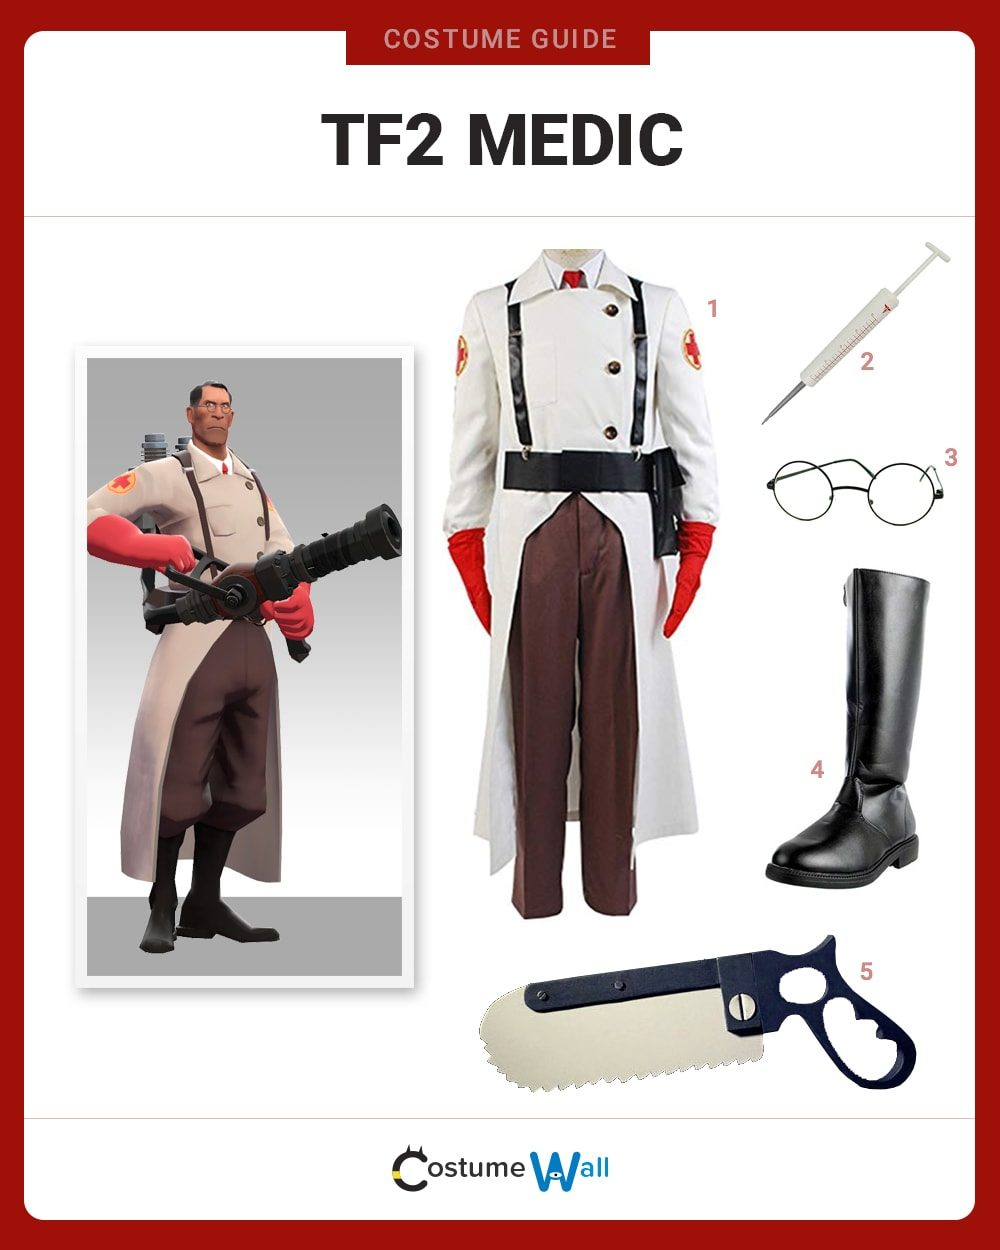 TF2 Medic Costume Guide